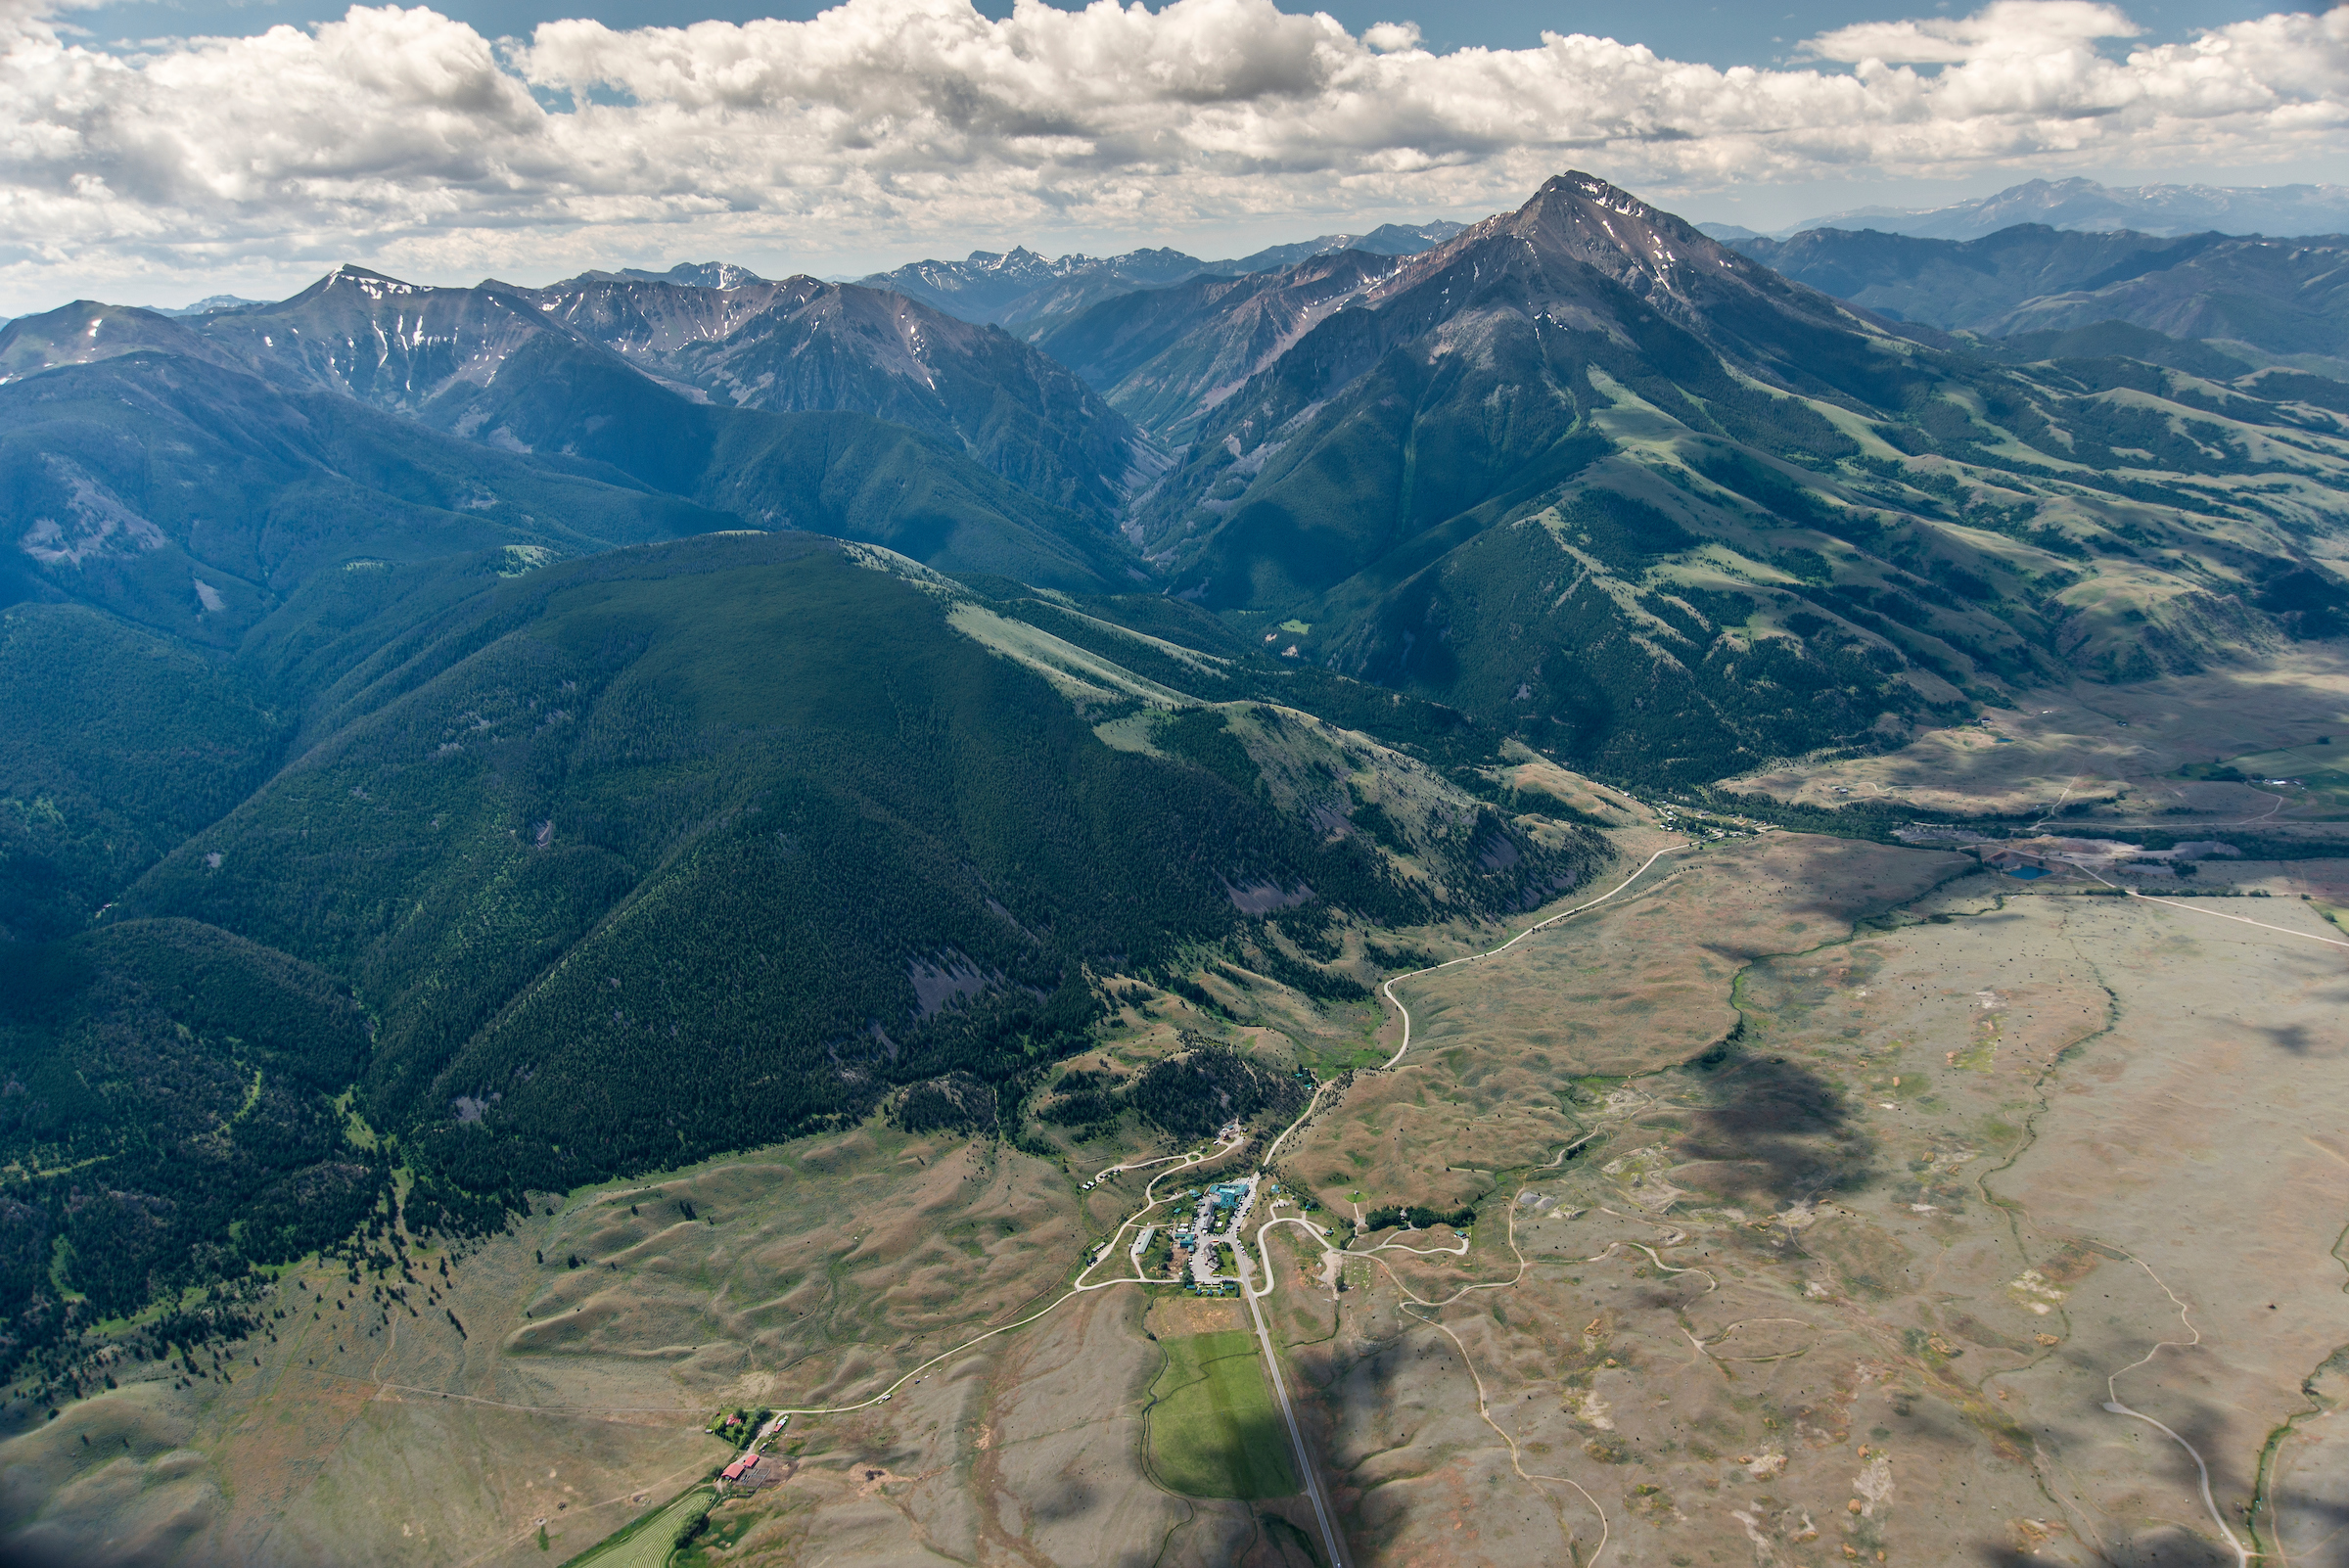 Canadian company Lucky Minerals wants to explore for gold in Emigrant Gulch (MT), just a few miles north of Yellowstone National Park. Comment today, and speak out about this terrible idea. (Photo William Campbell.)